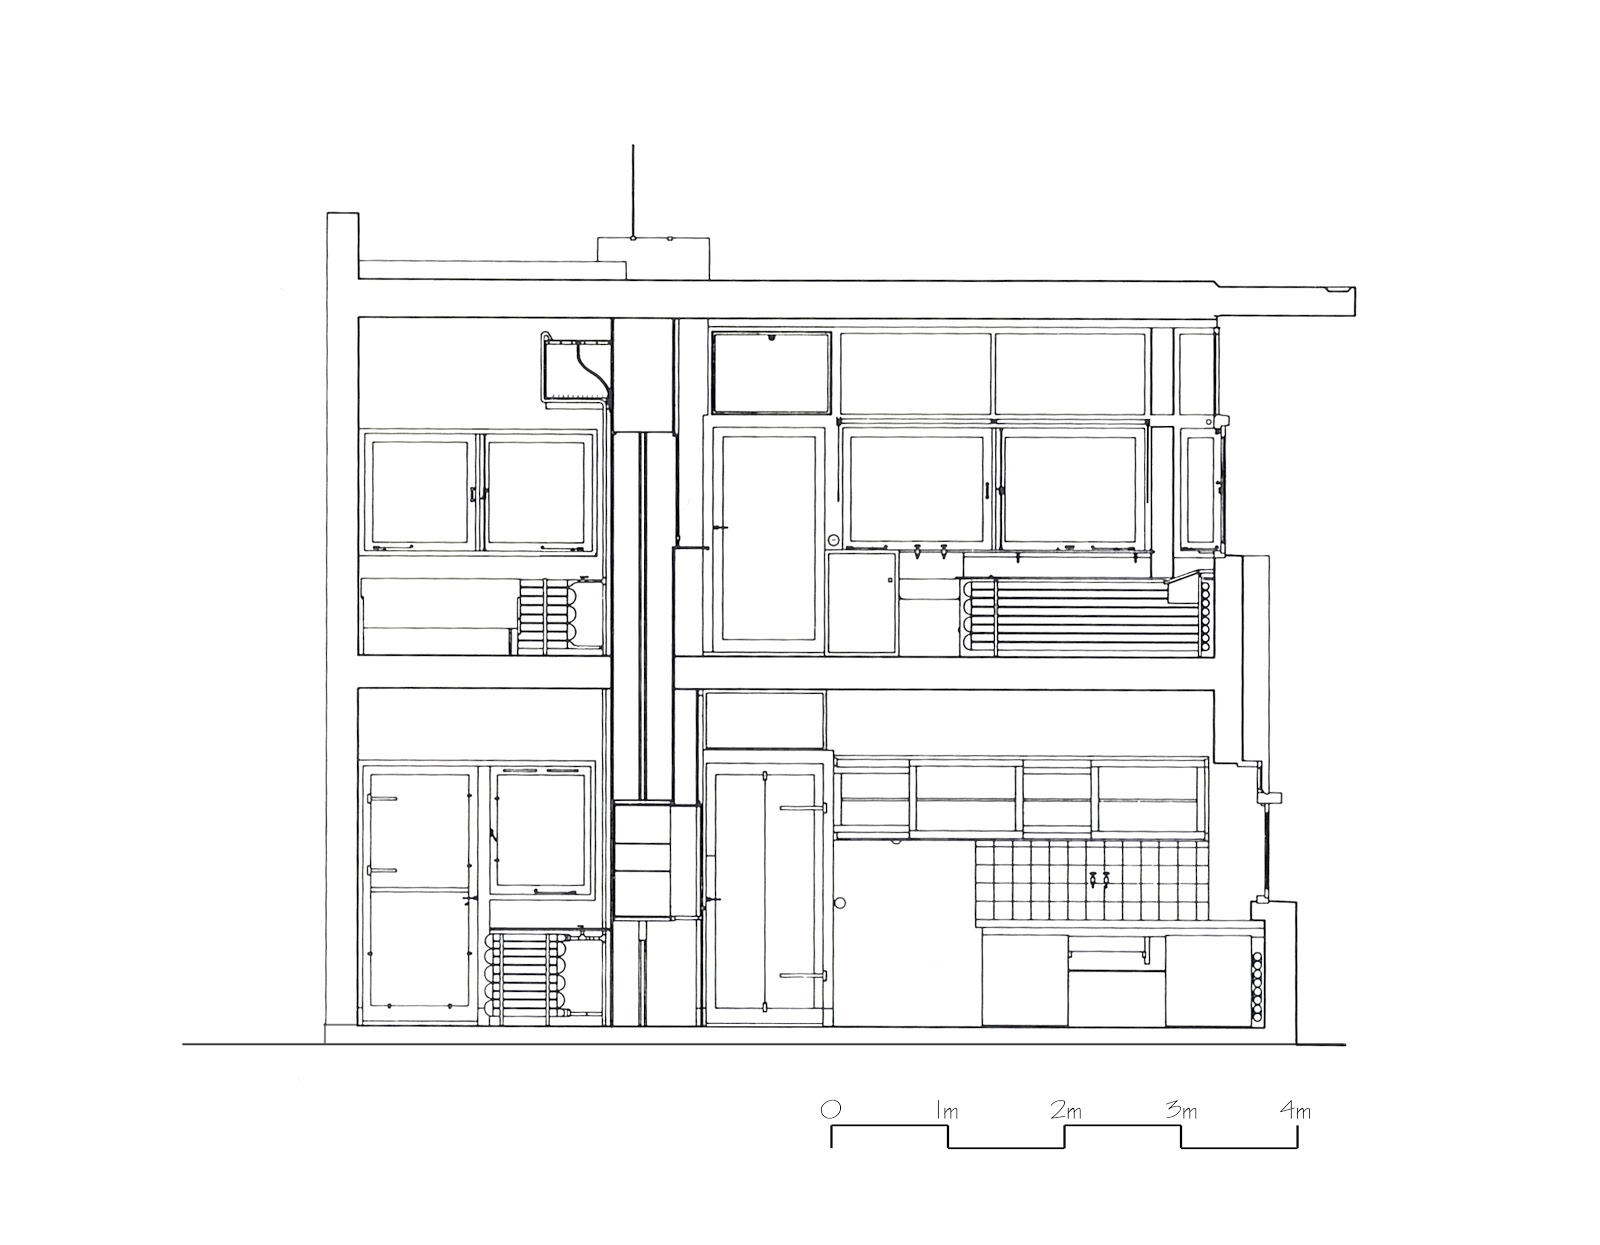 Vgn Tv Auto Electrical Wiring Diagram Vgnaw Series Schematics And Block Free Schematic The Rietveld Schroder House Hand Drawings